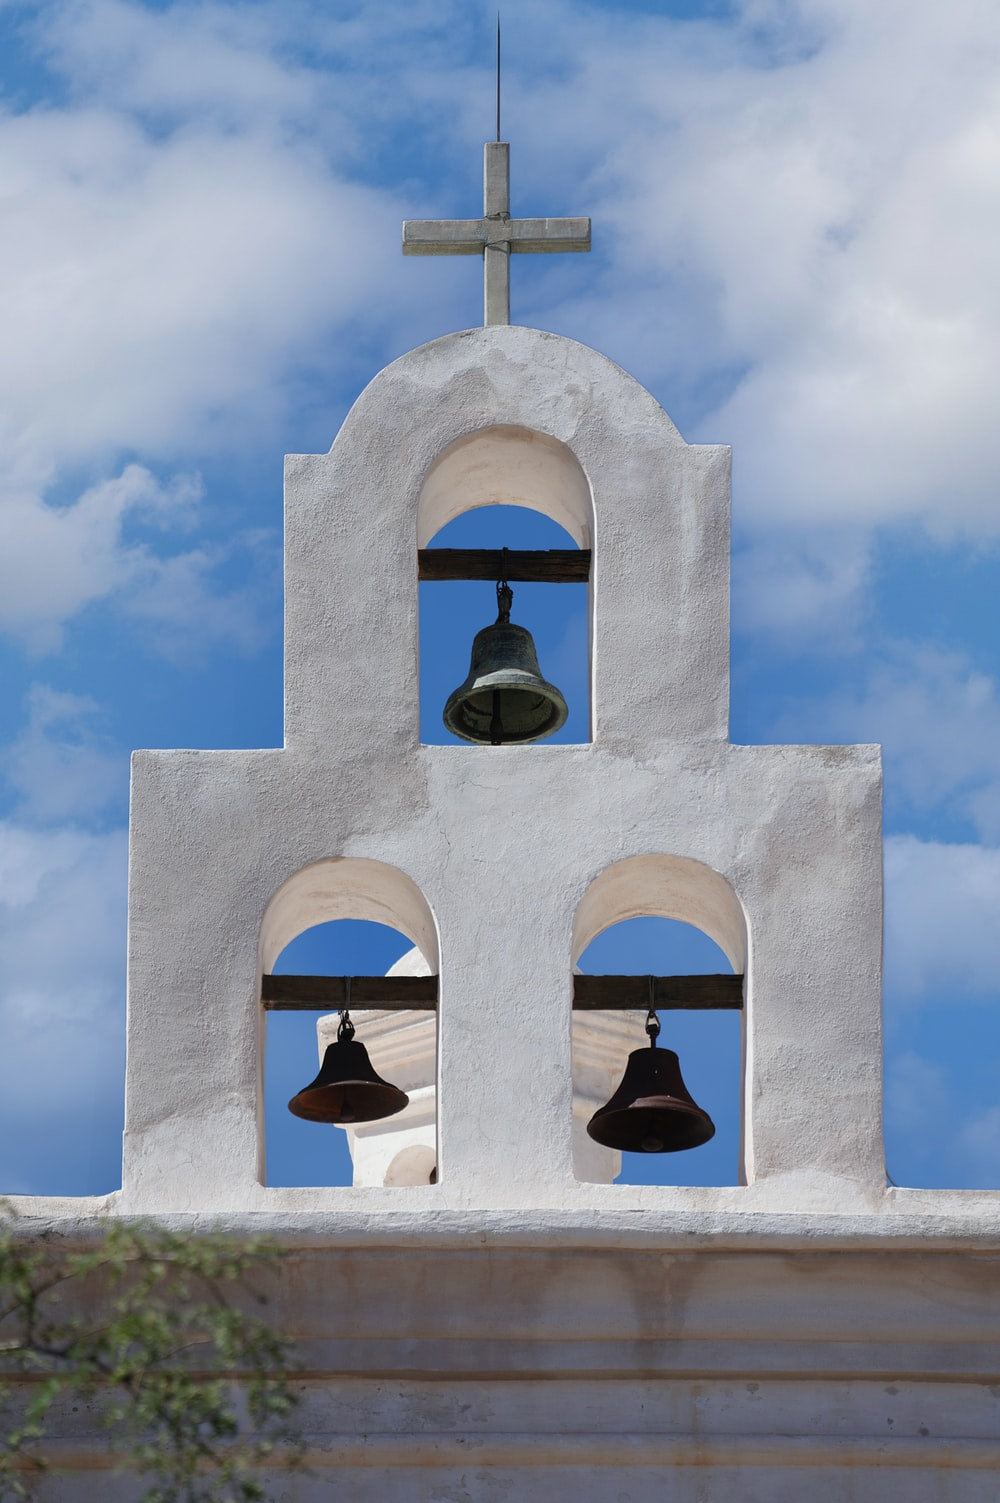 gray concrete bell under blue sky during daytime